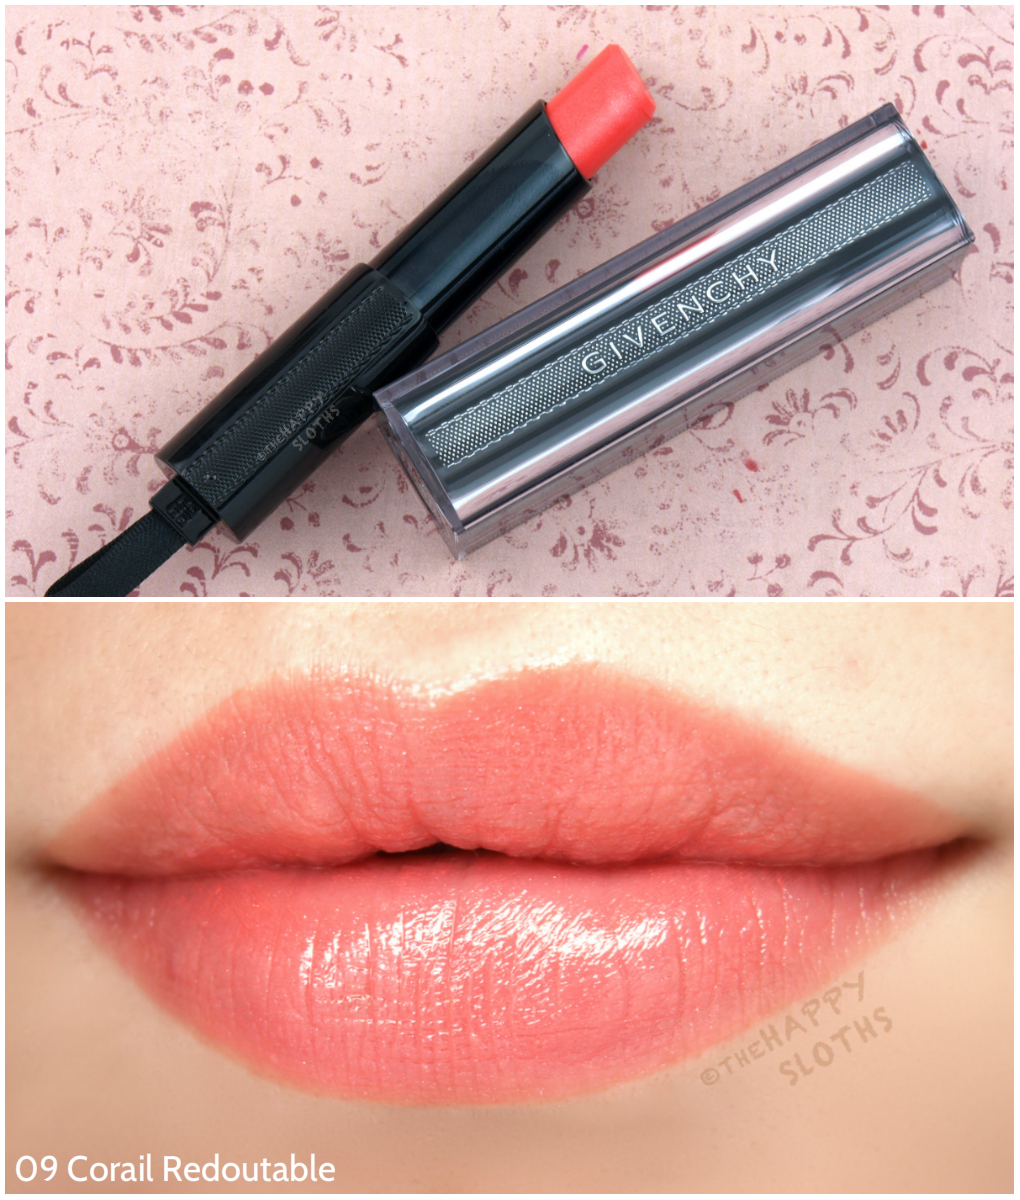 Givenchy Rouge Interdit Vinyl Color Enhancing Lipstick 09 Corail Redoutable Review and Swatches